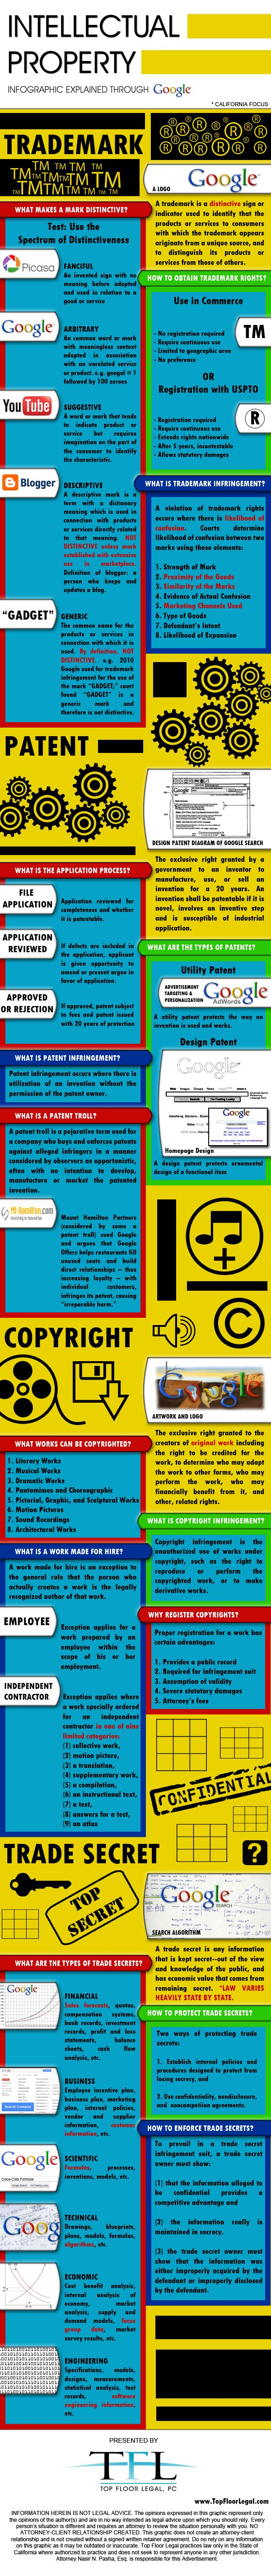 Intellectual Property - for all of you wanting to take your talents further!